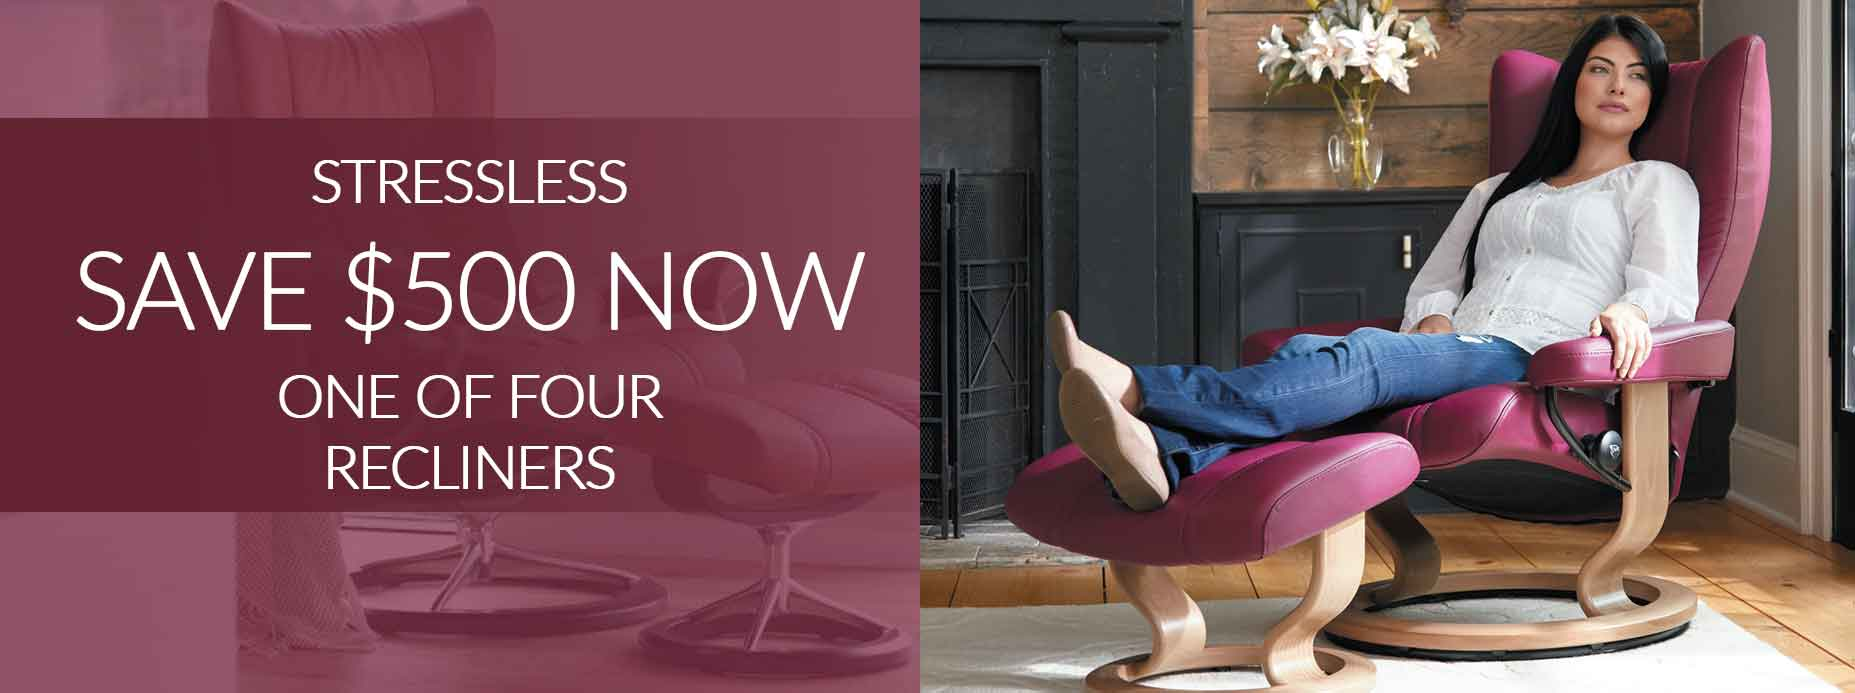 Stressless Mayfair Recliners Save $400